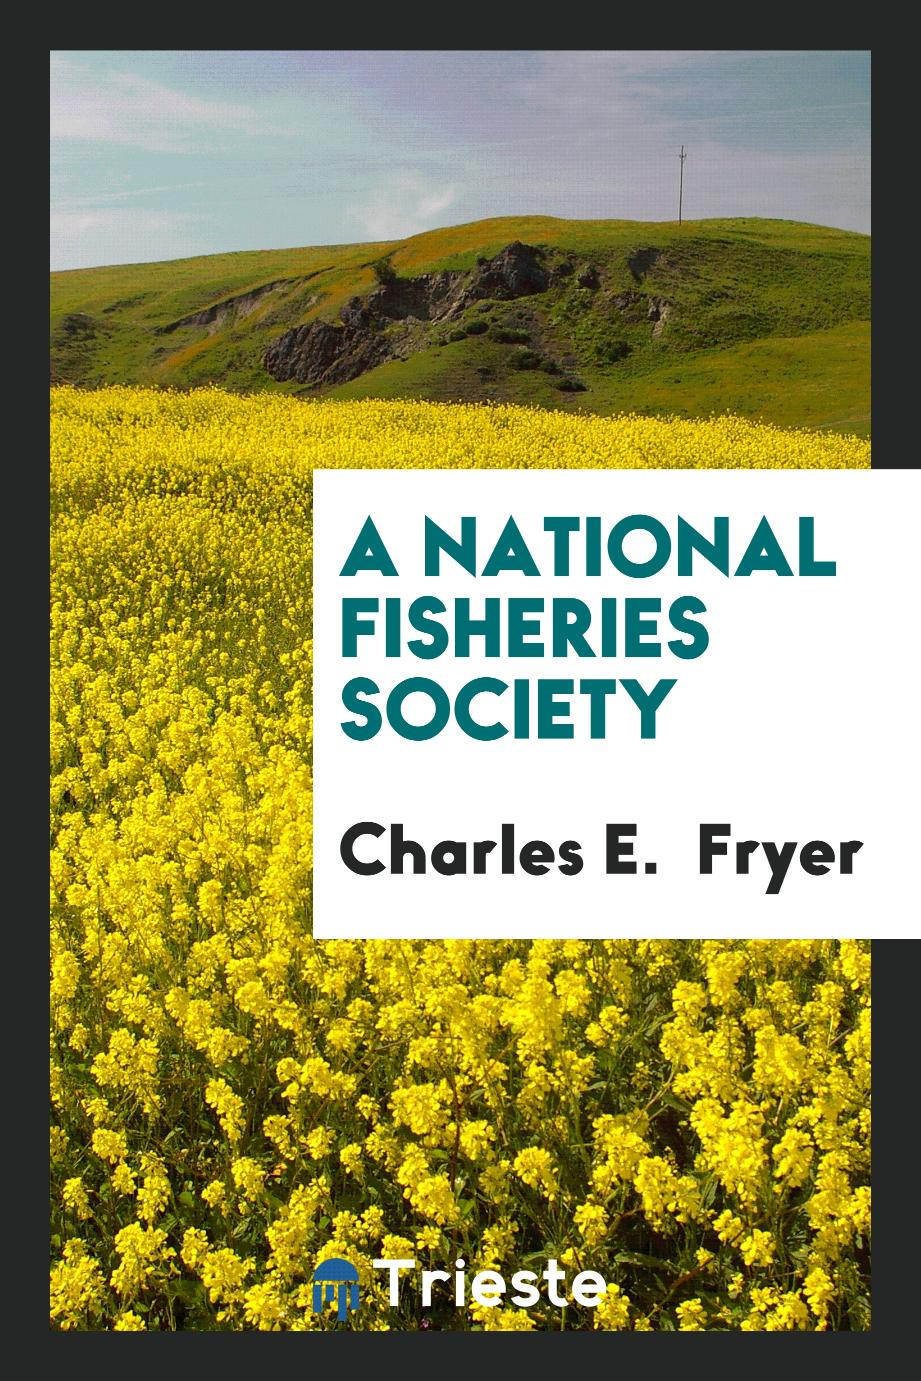 A National Fisheries Society